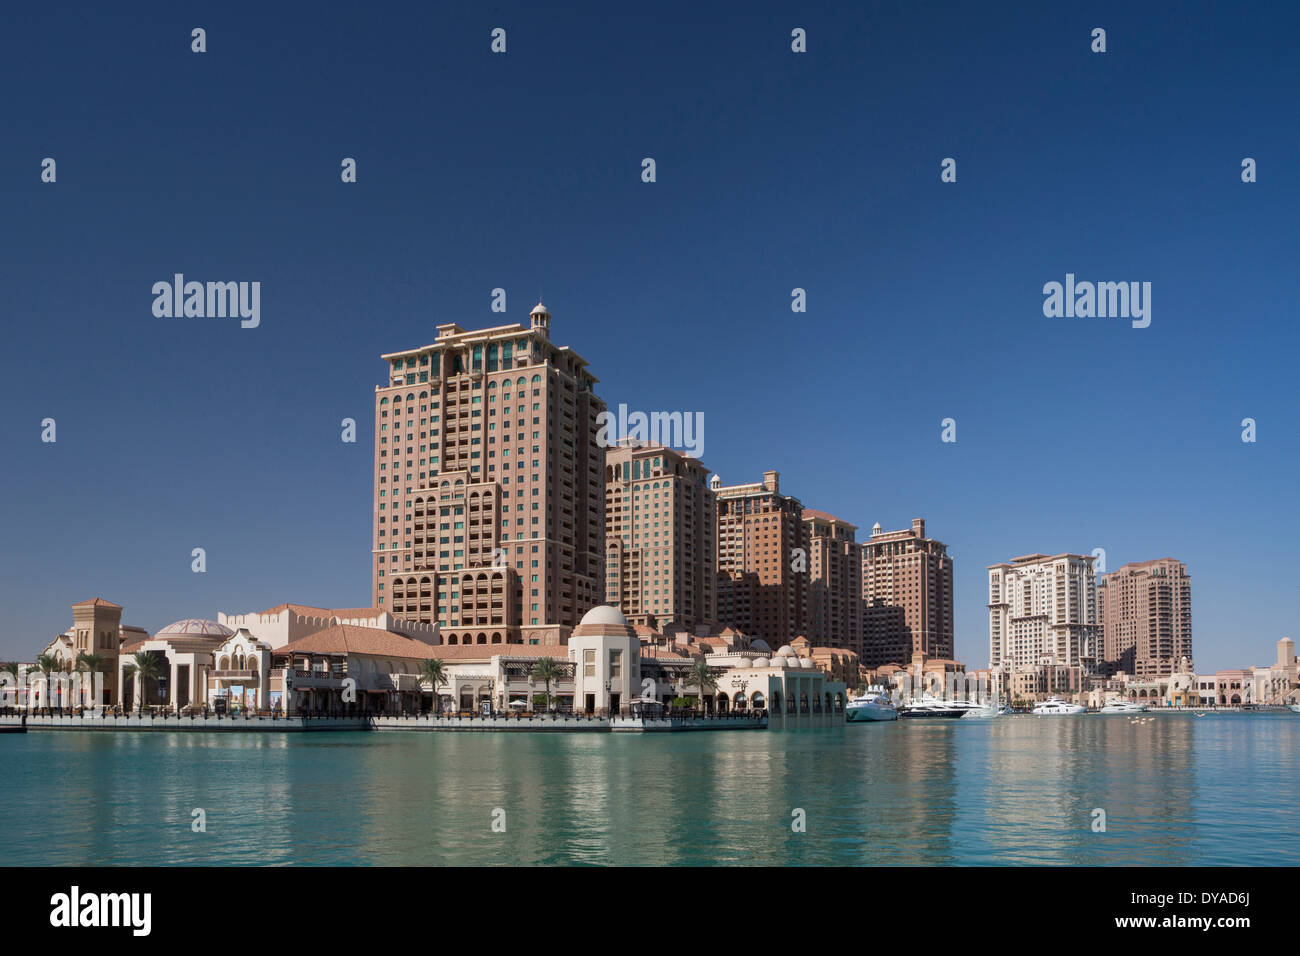 Doha, Qatar, Middle East, The Pearl, architecture, bay, city, construction, new, planning, urban, development - Stock Image